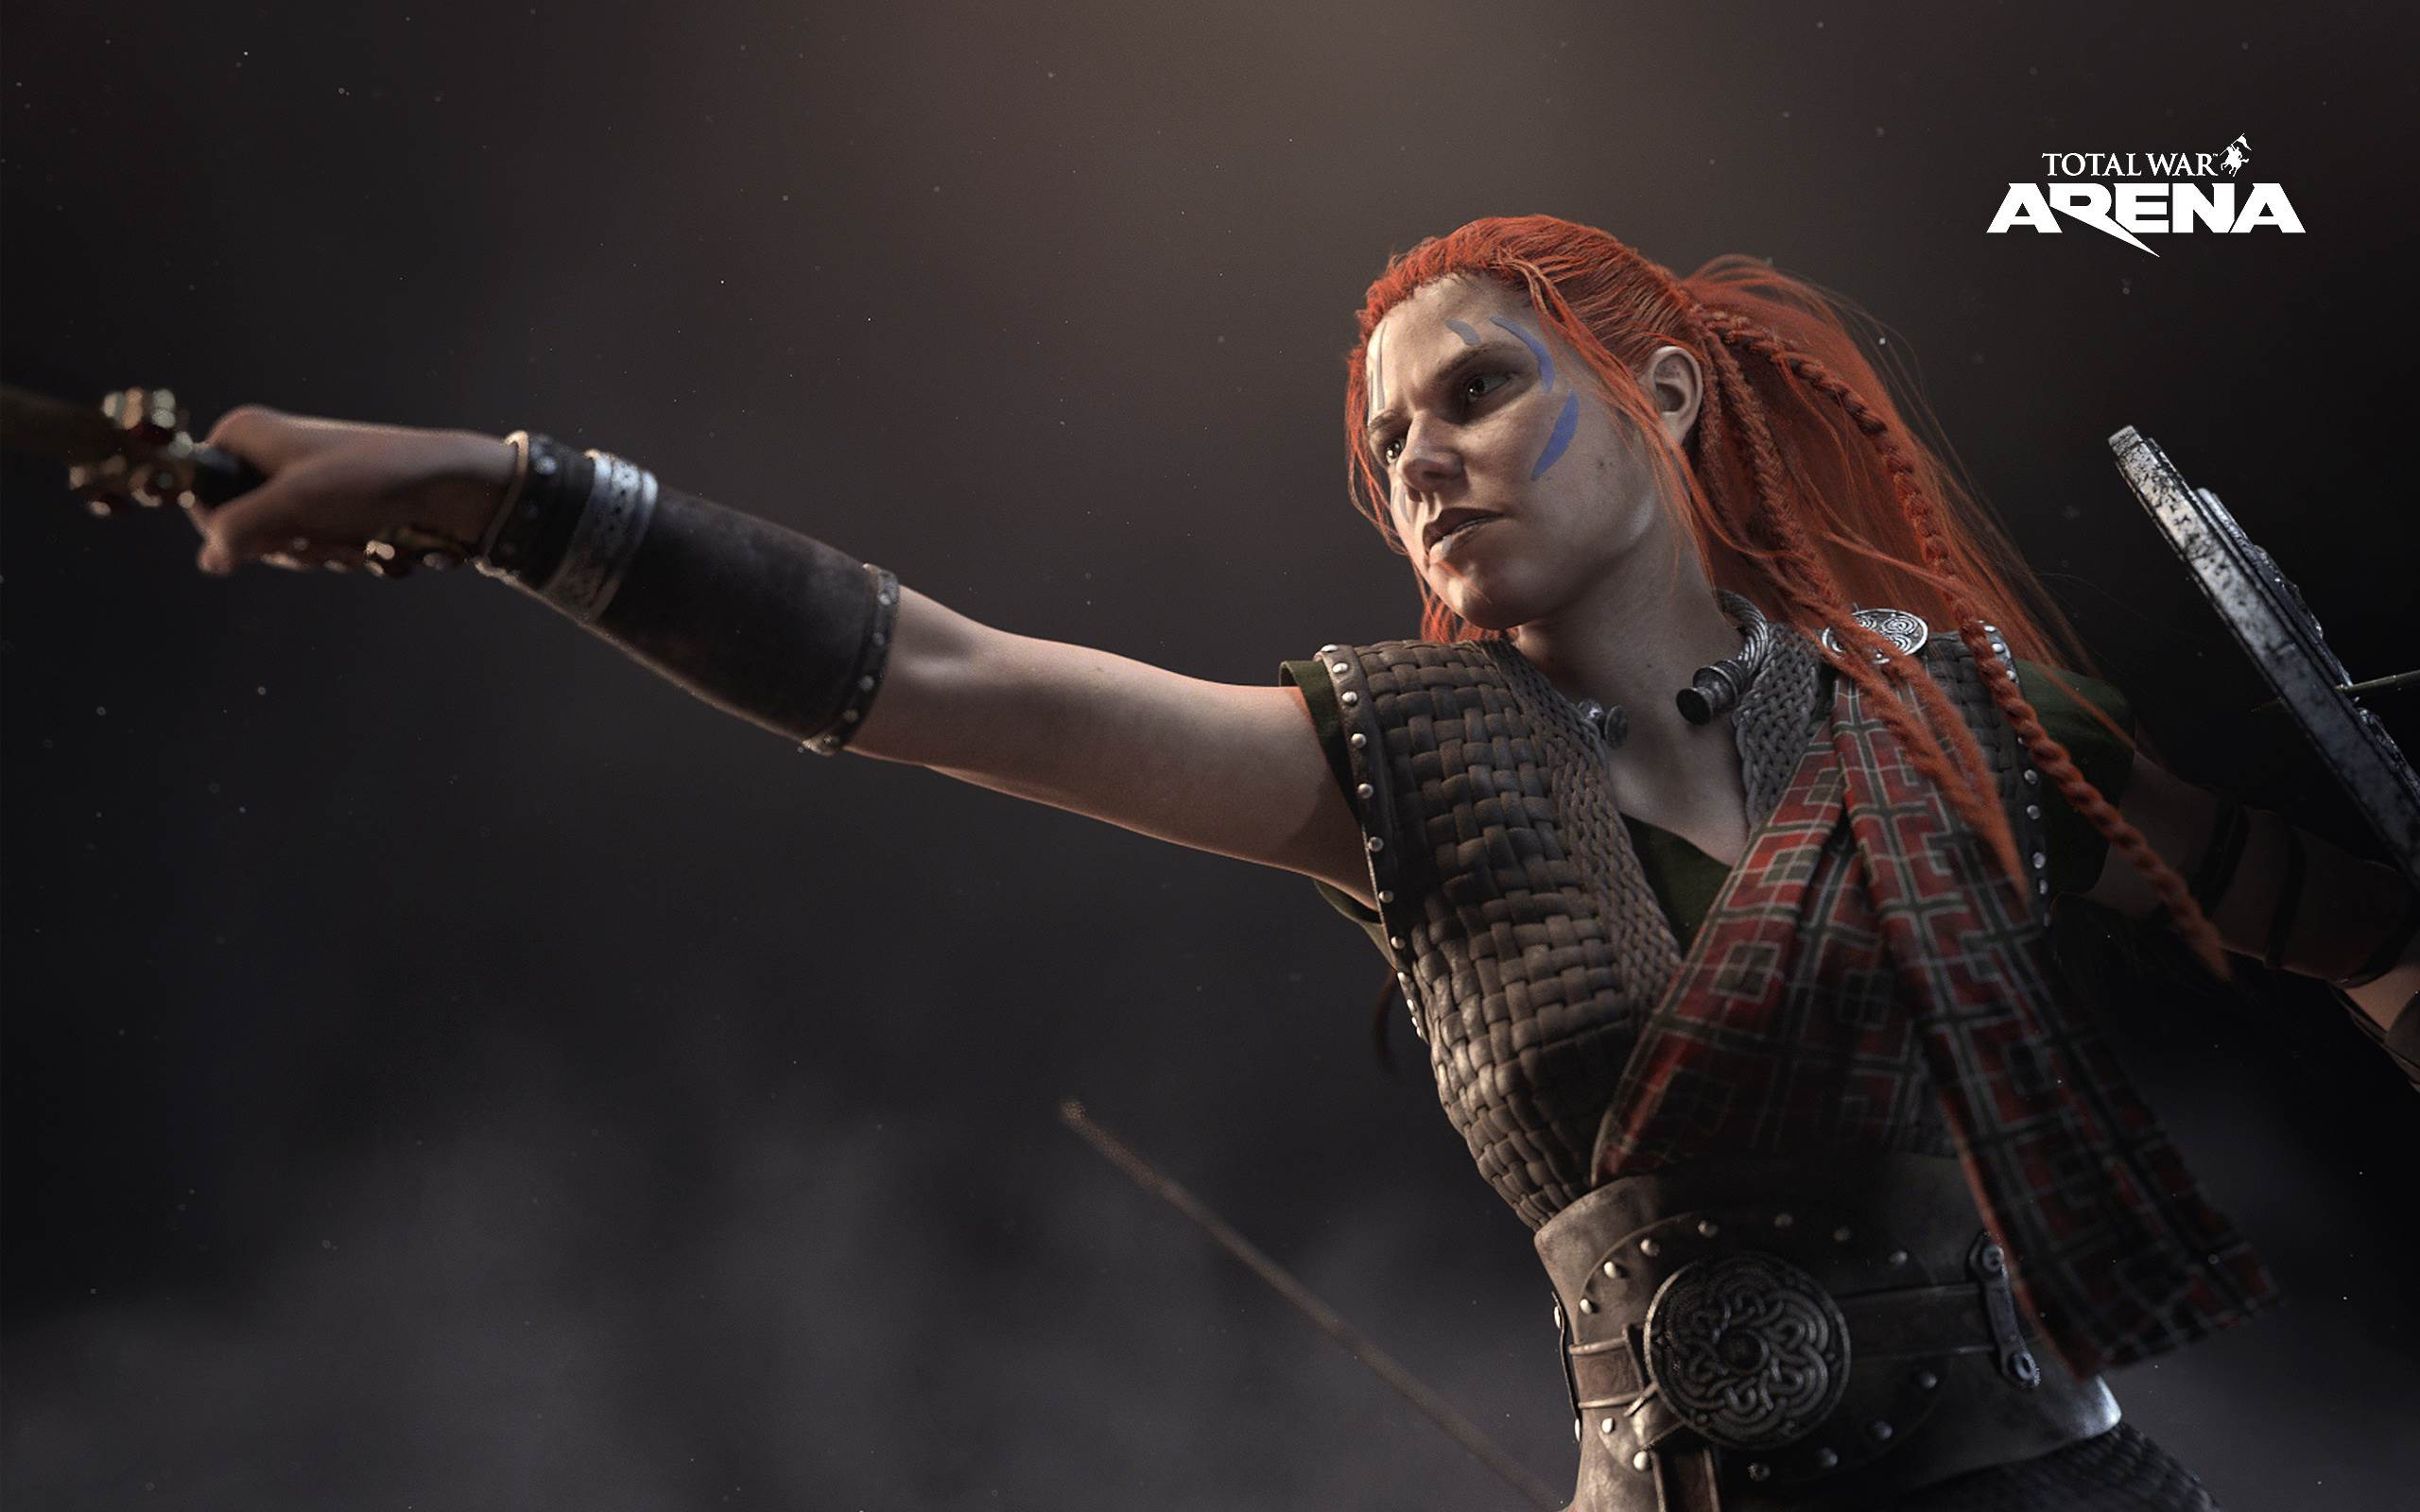 Boudica In Total War: Arena Wallpaper